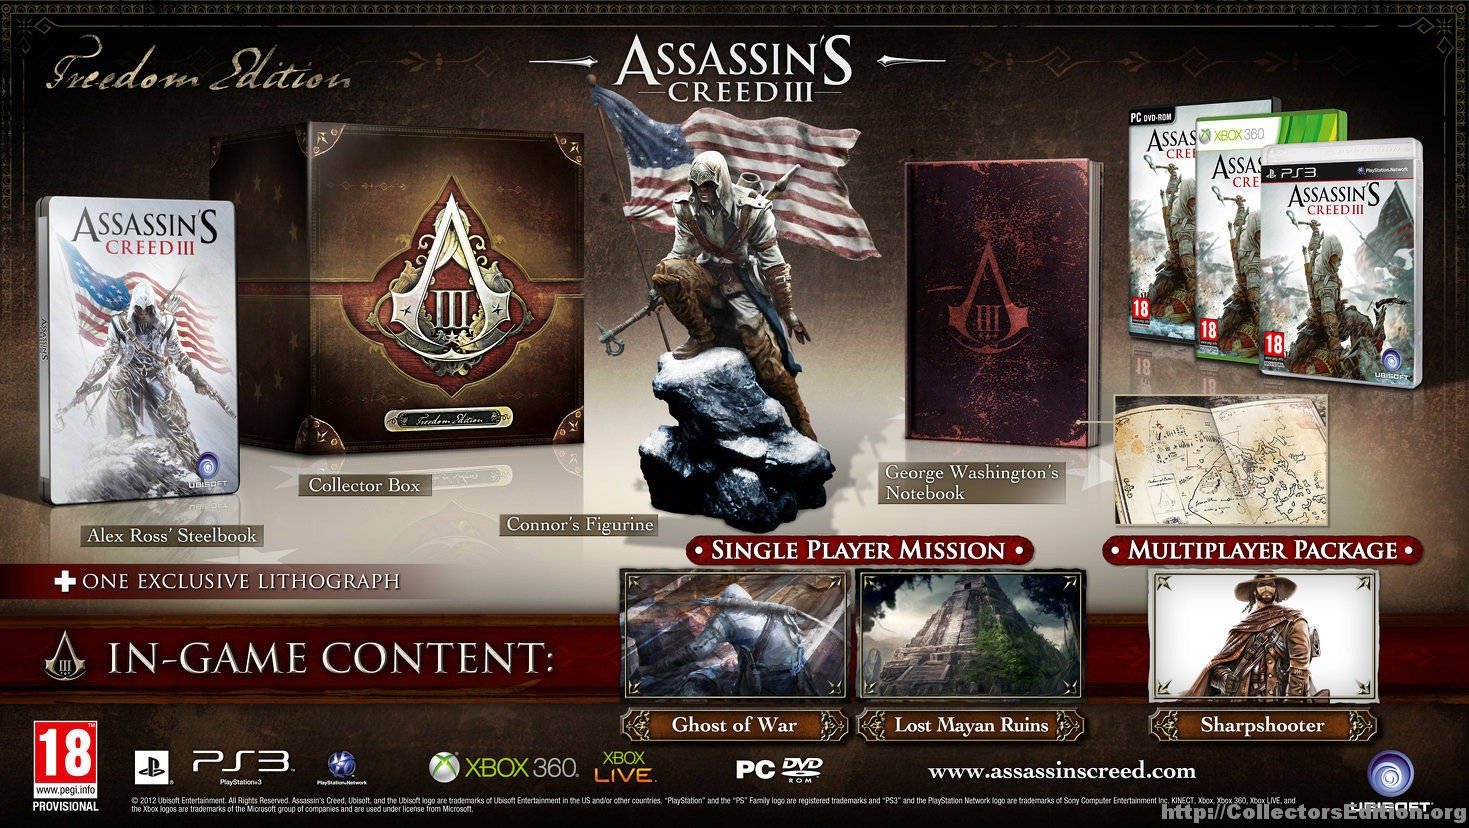 Collectorsedition. Org » assassin's creed iii freedom edition (ps3) [2].